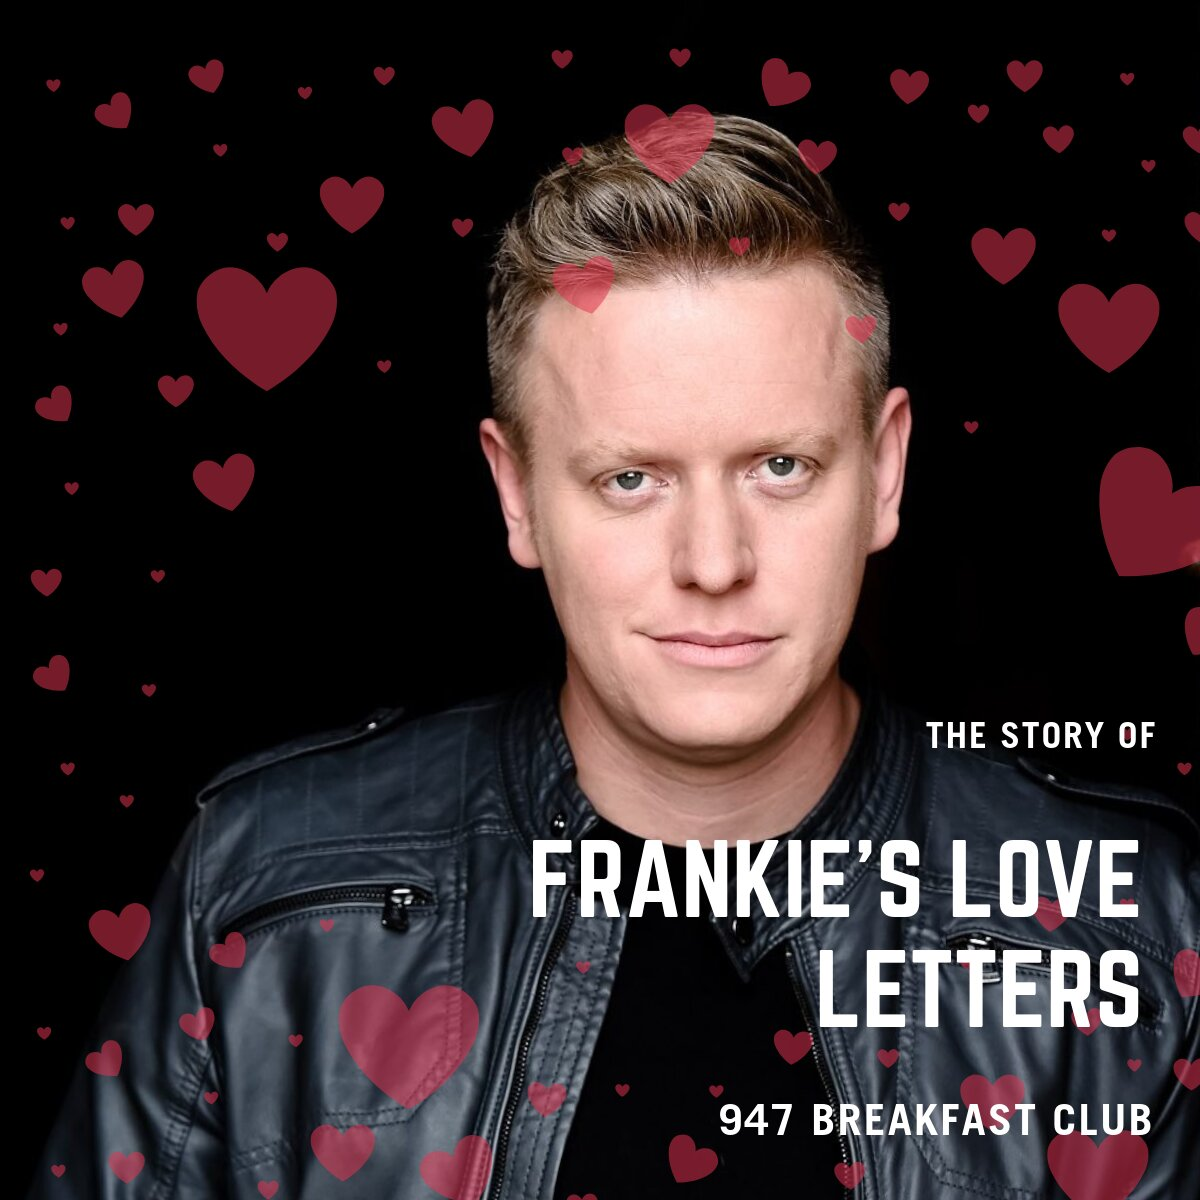 The story of Frankie's old love letters: Circa 1997